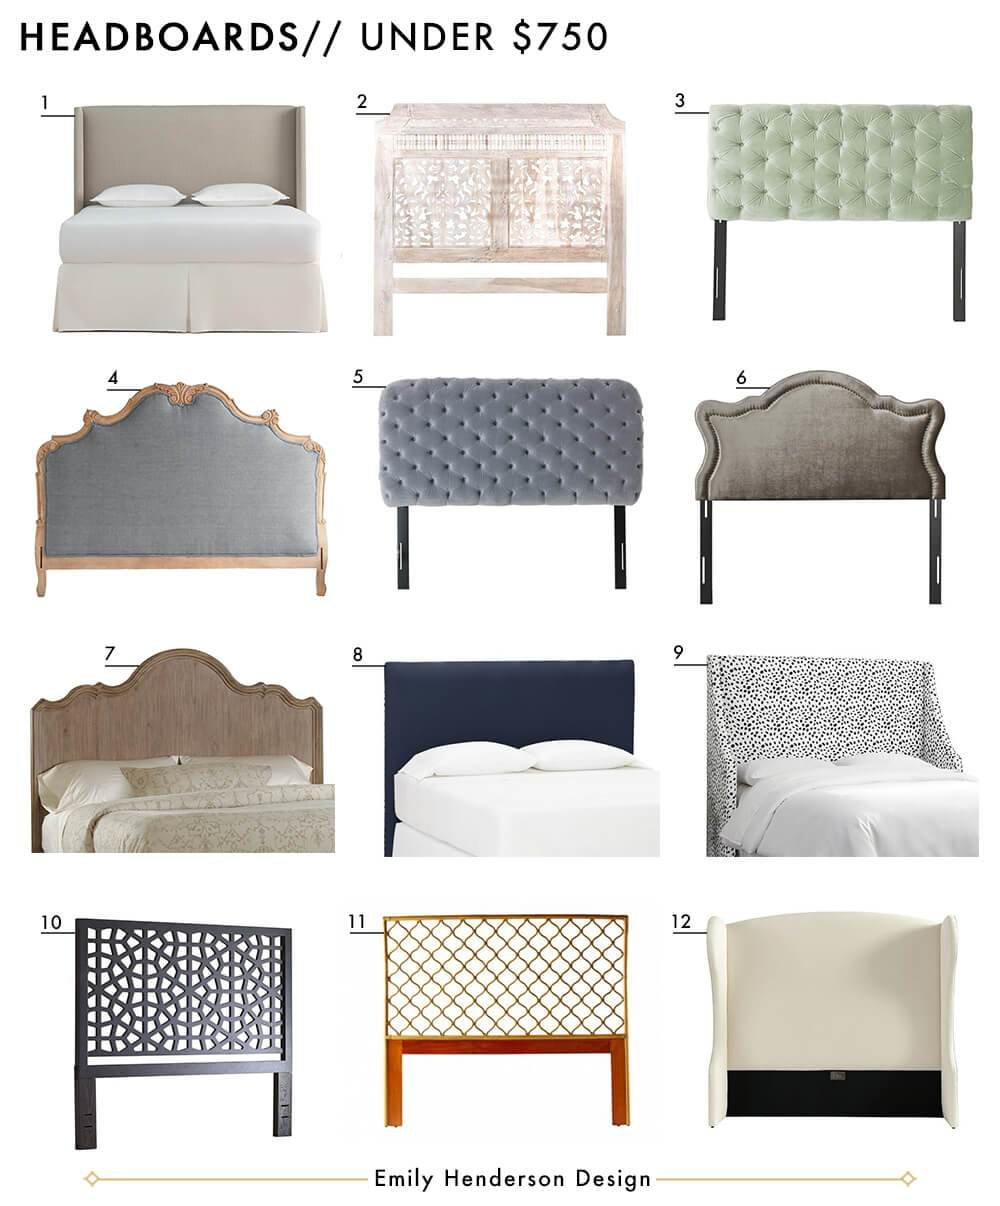 Best 72 Affordable Headboards At Every Price Point Emily With Pictures